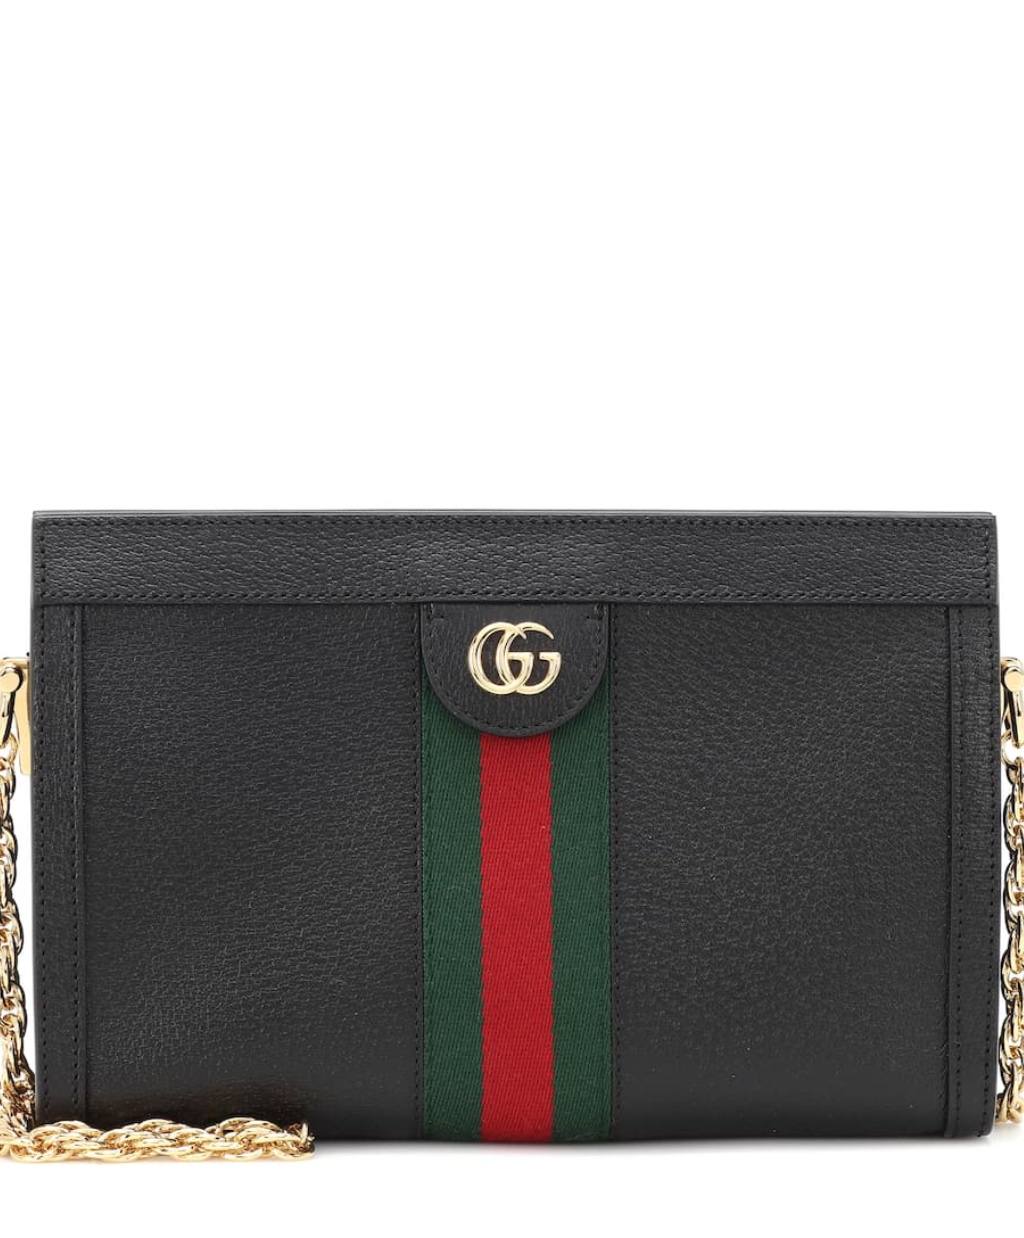 Ophidia Small leather shoulder bag Gucci